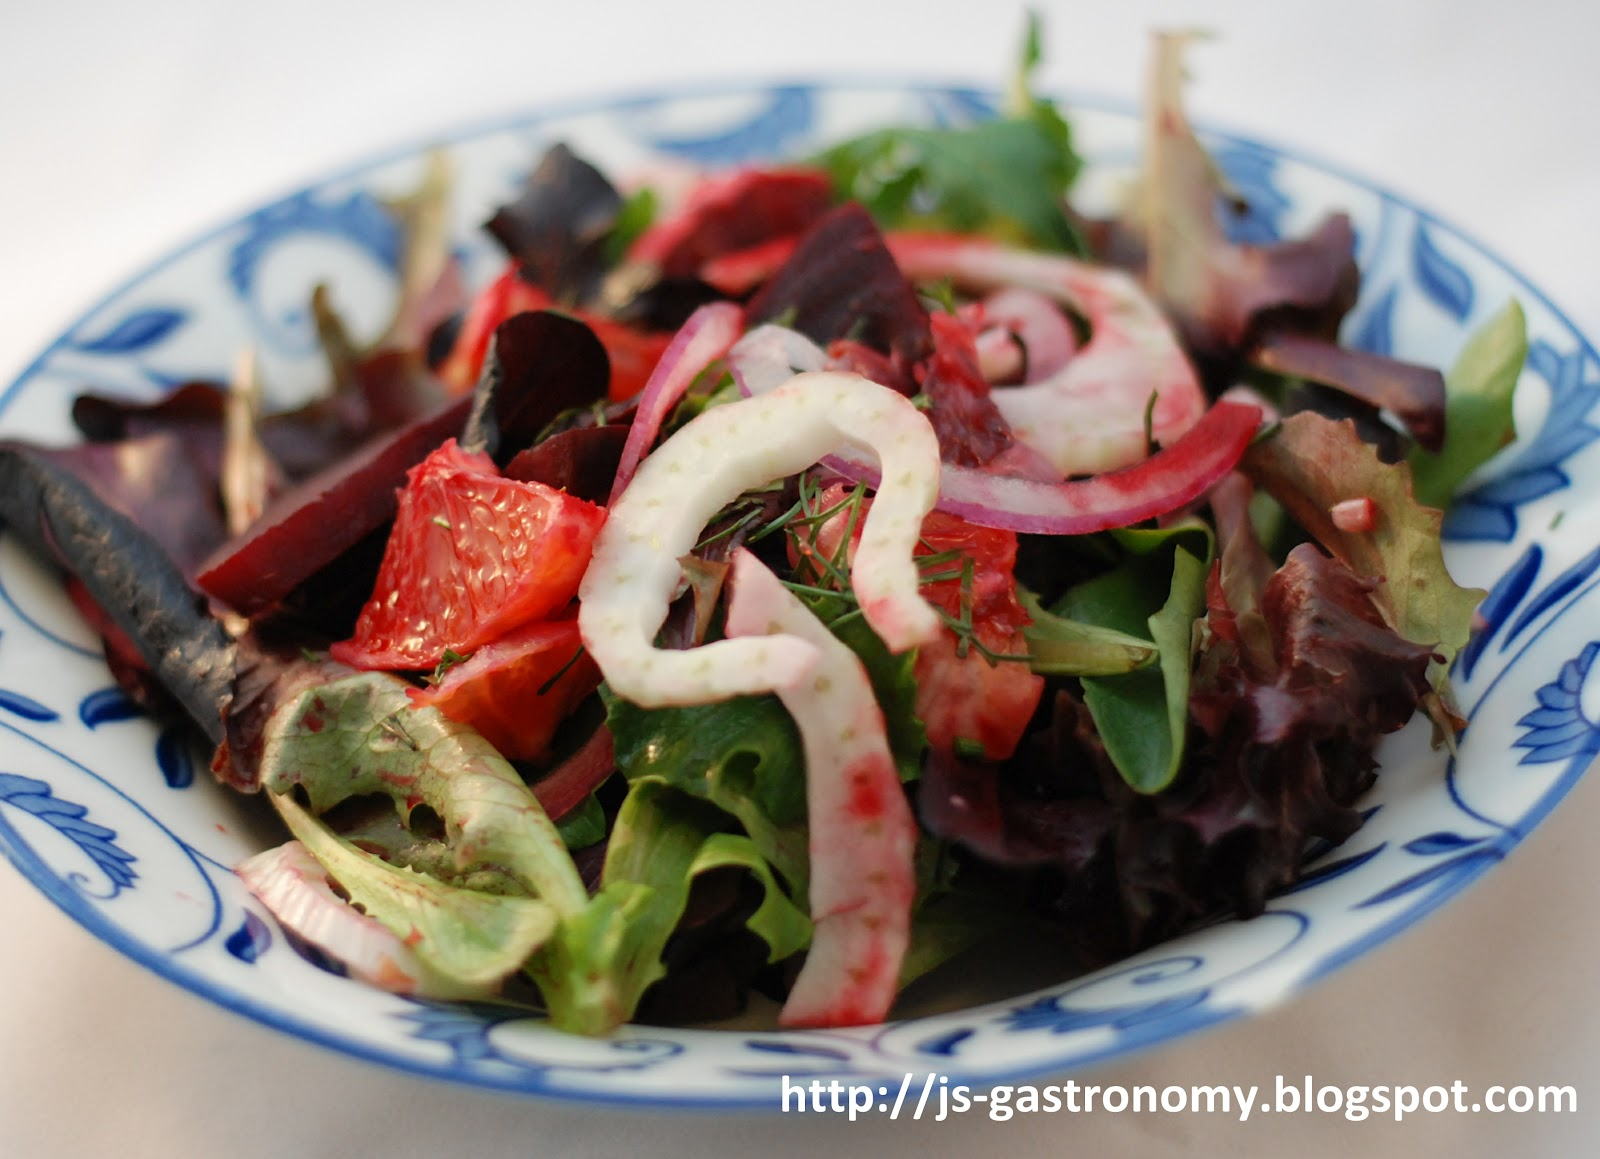 Gastronomy: Blood Orange, Beet, and Fennel Salad